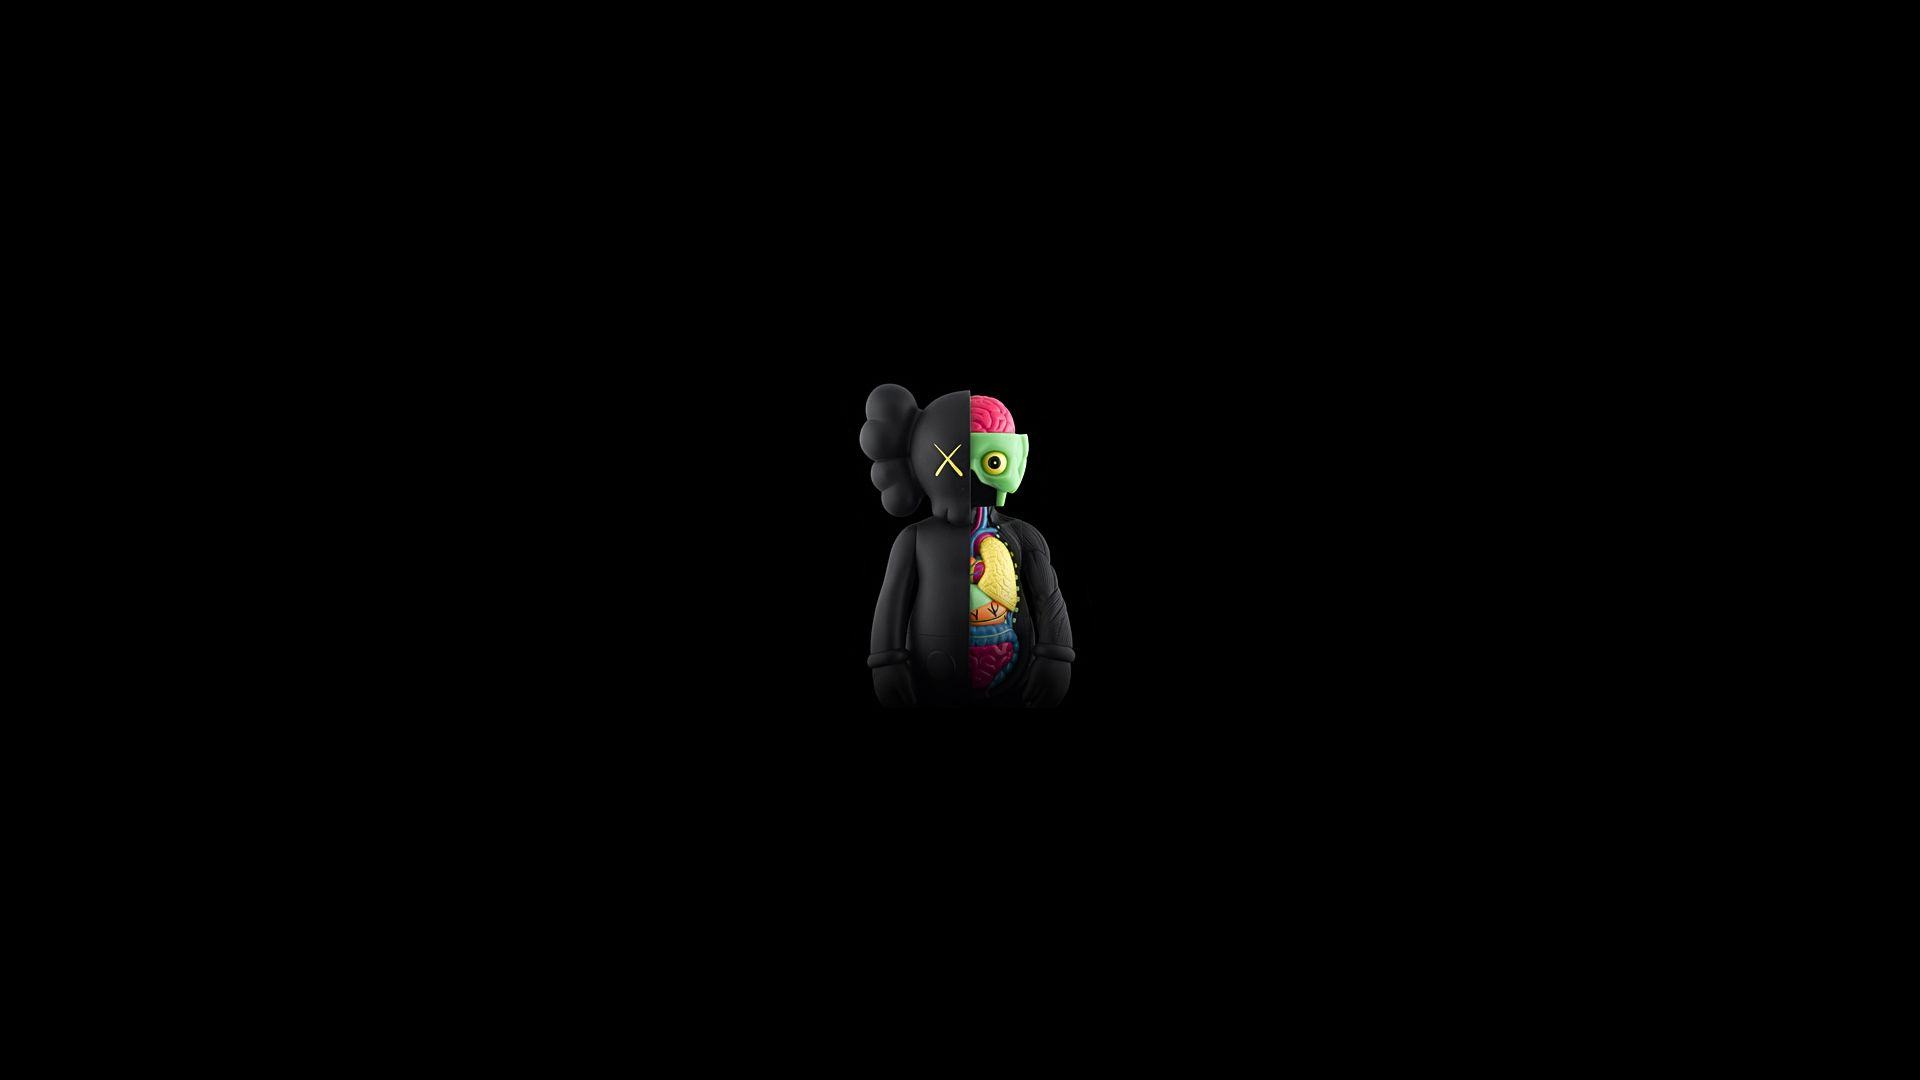 wallpapers kaws originalfake x original fake 1600x1200